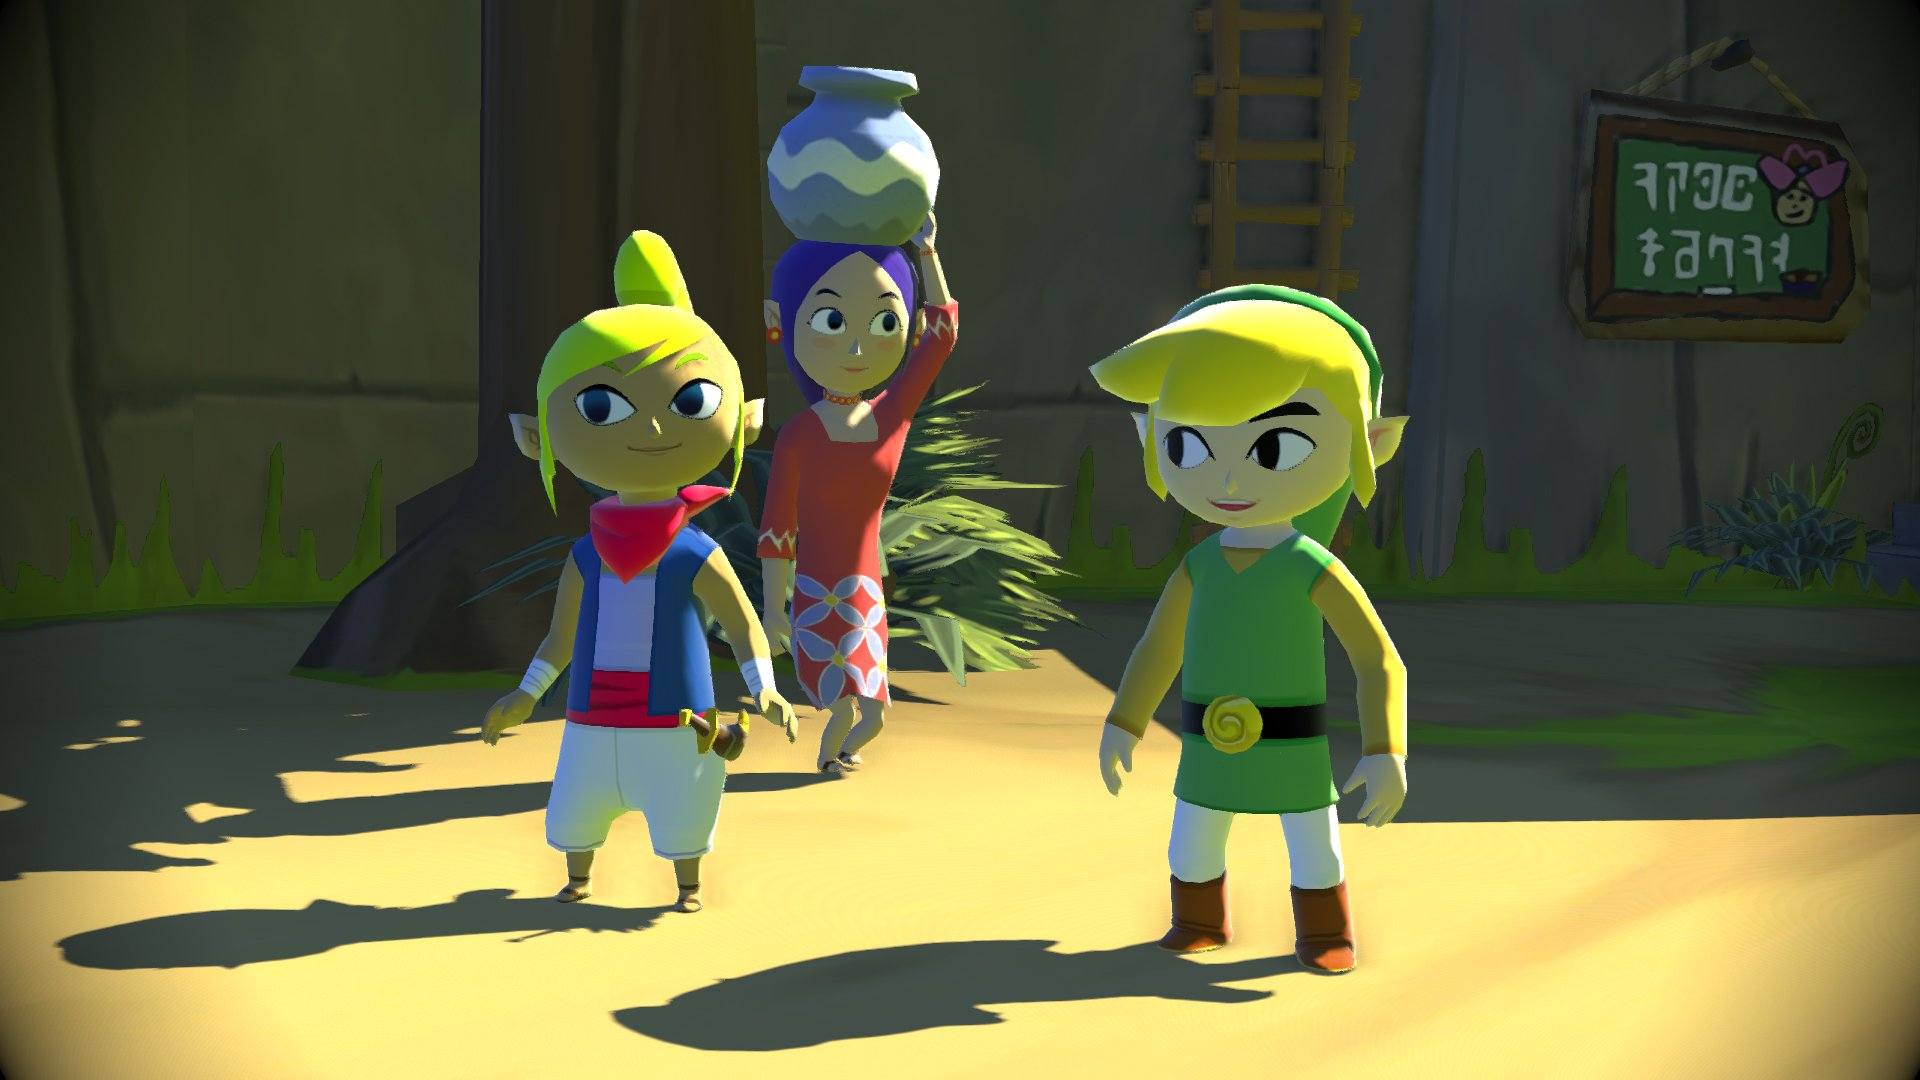 zelda-wind-waker-nintendo-unveils-the-legend-of-hd-for-wii-u-183248